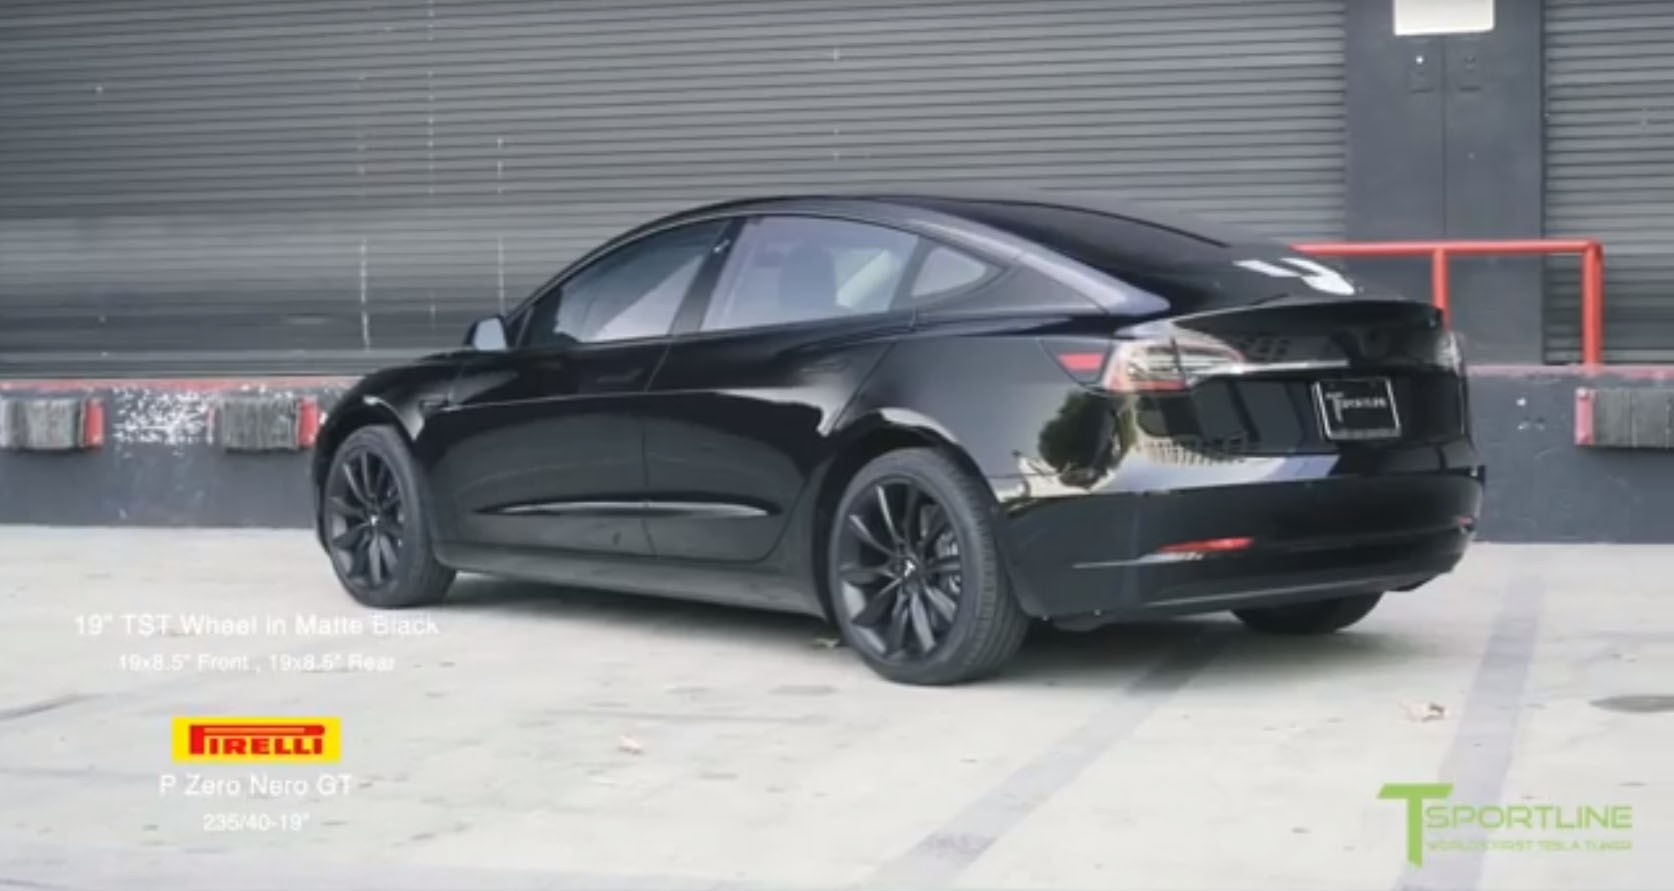 Hedendaags Blacked-Out Tesla Model 3 Looks Set to Do a Drive-by Shooting GV-88